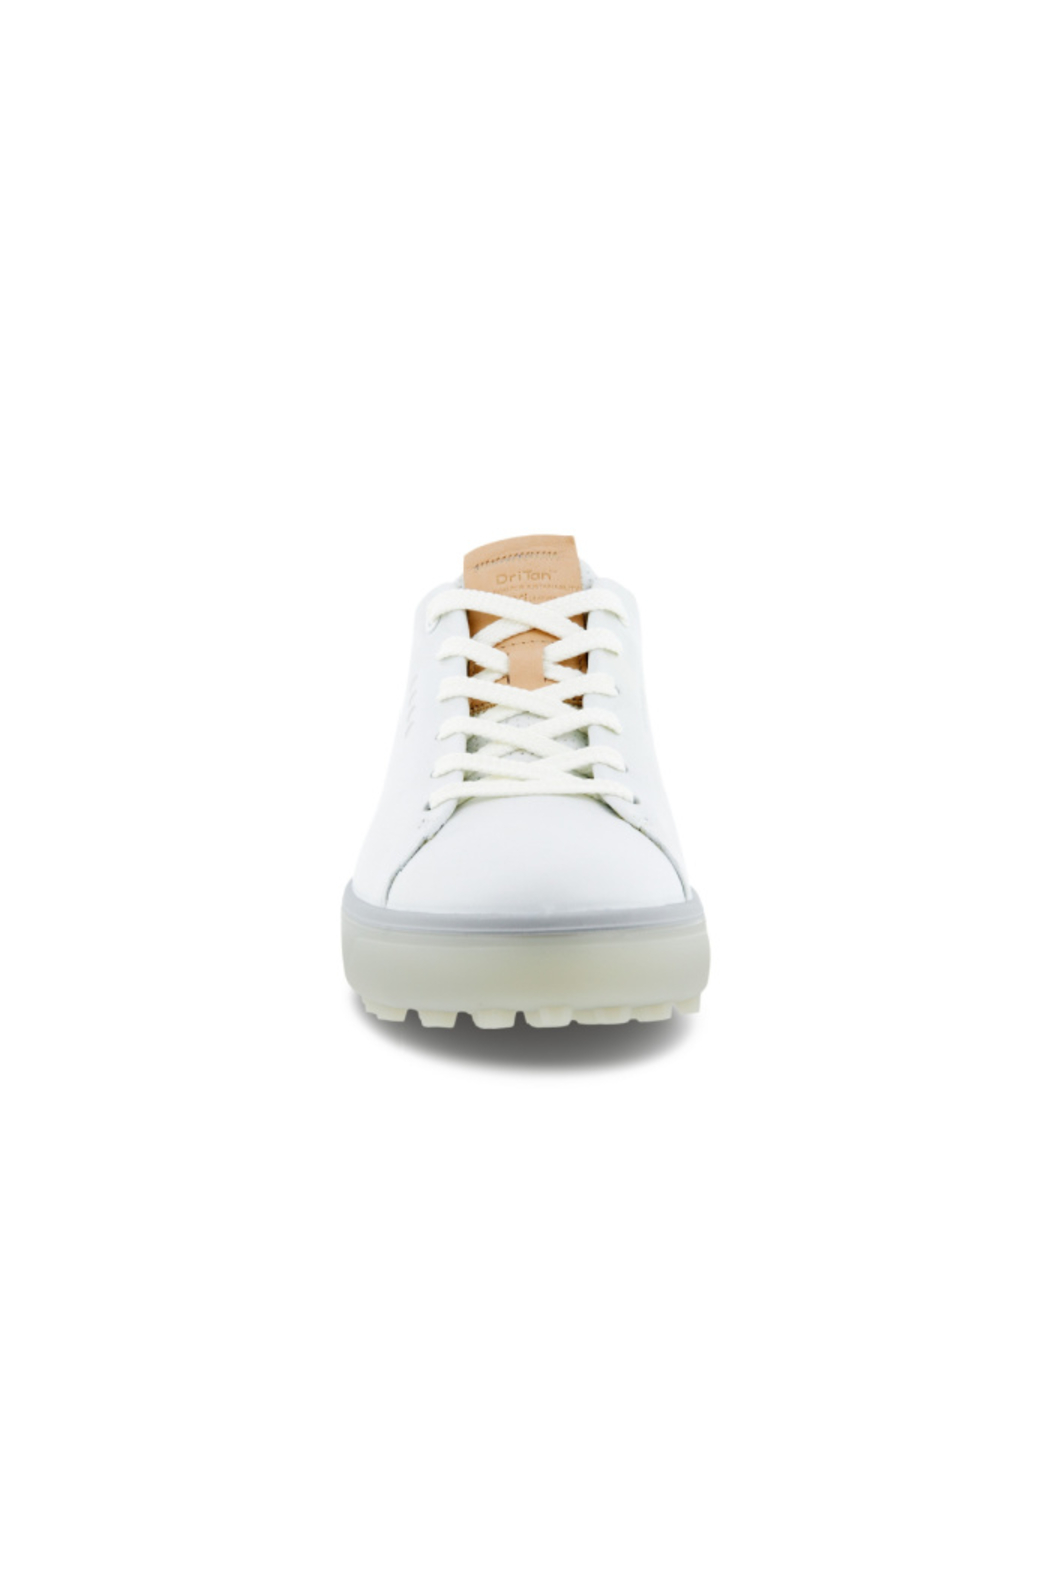 ECCO Ecco Women's Tray Golf Shoes - Back Cropped Image